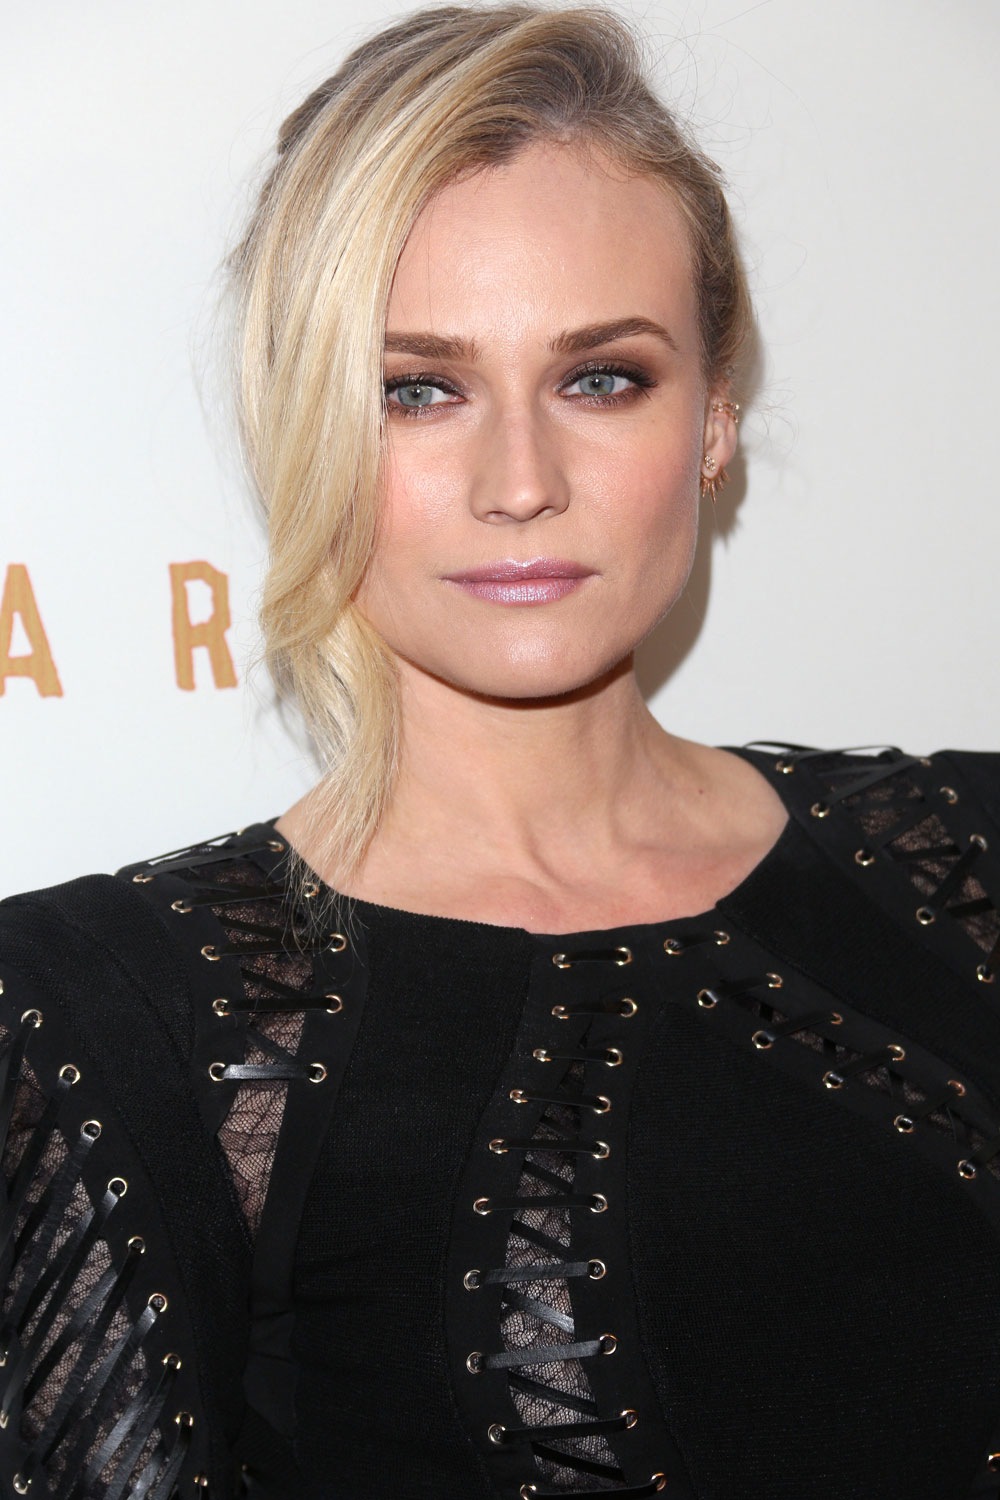 Diane Kruger With A Sweeping Fringe - The Hair 100: Top Celebrity ...